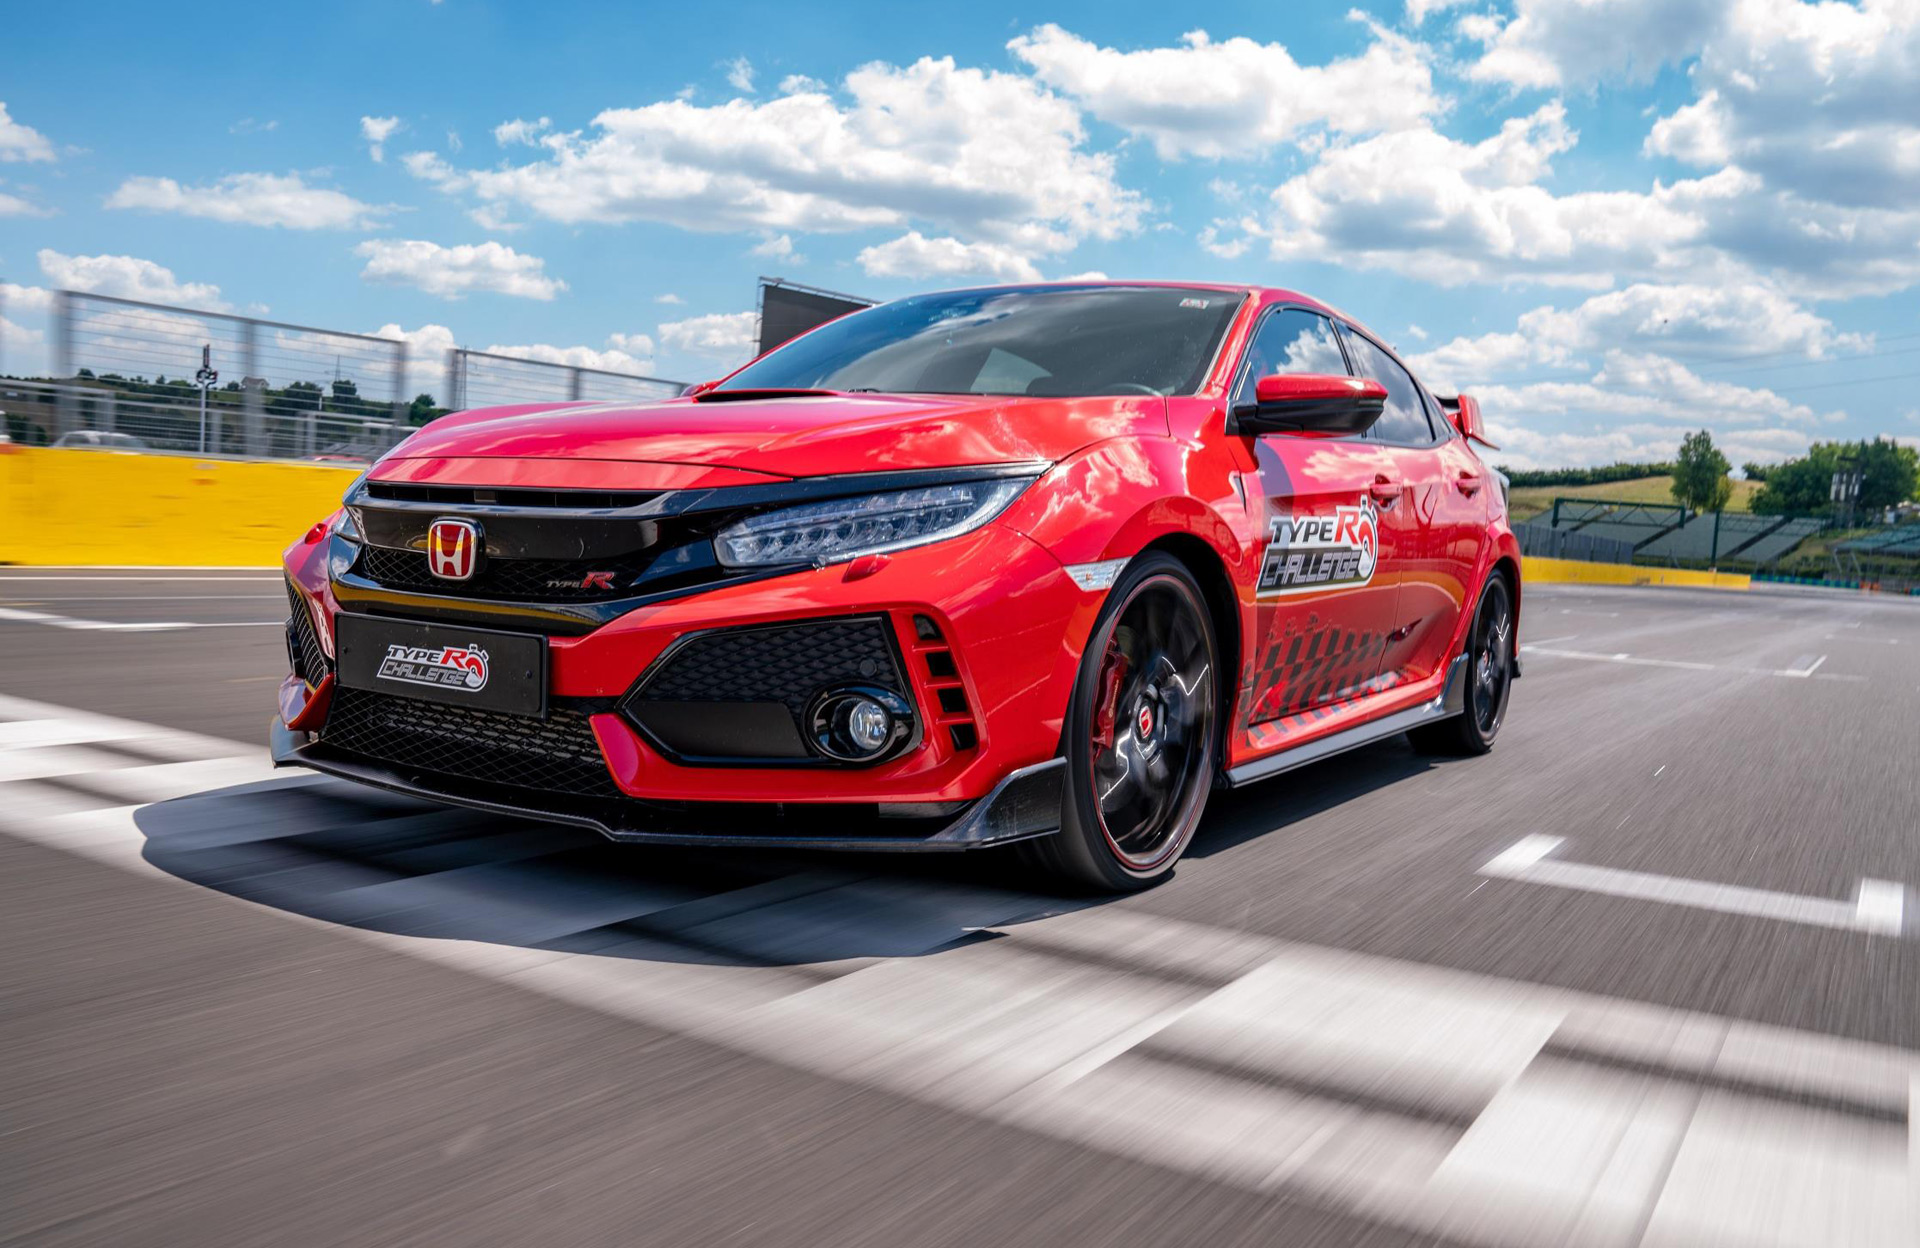 F1 Champ Jenson Button Sets 2017 Honda Civic Type Rs Final Lap Record 1970 Si